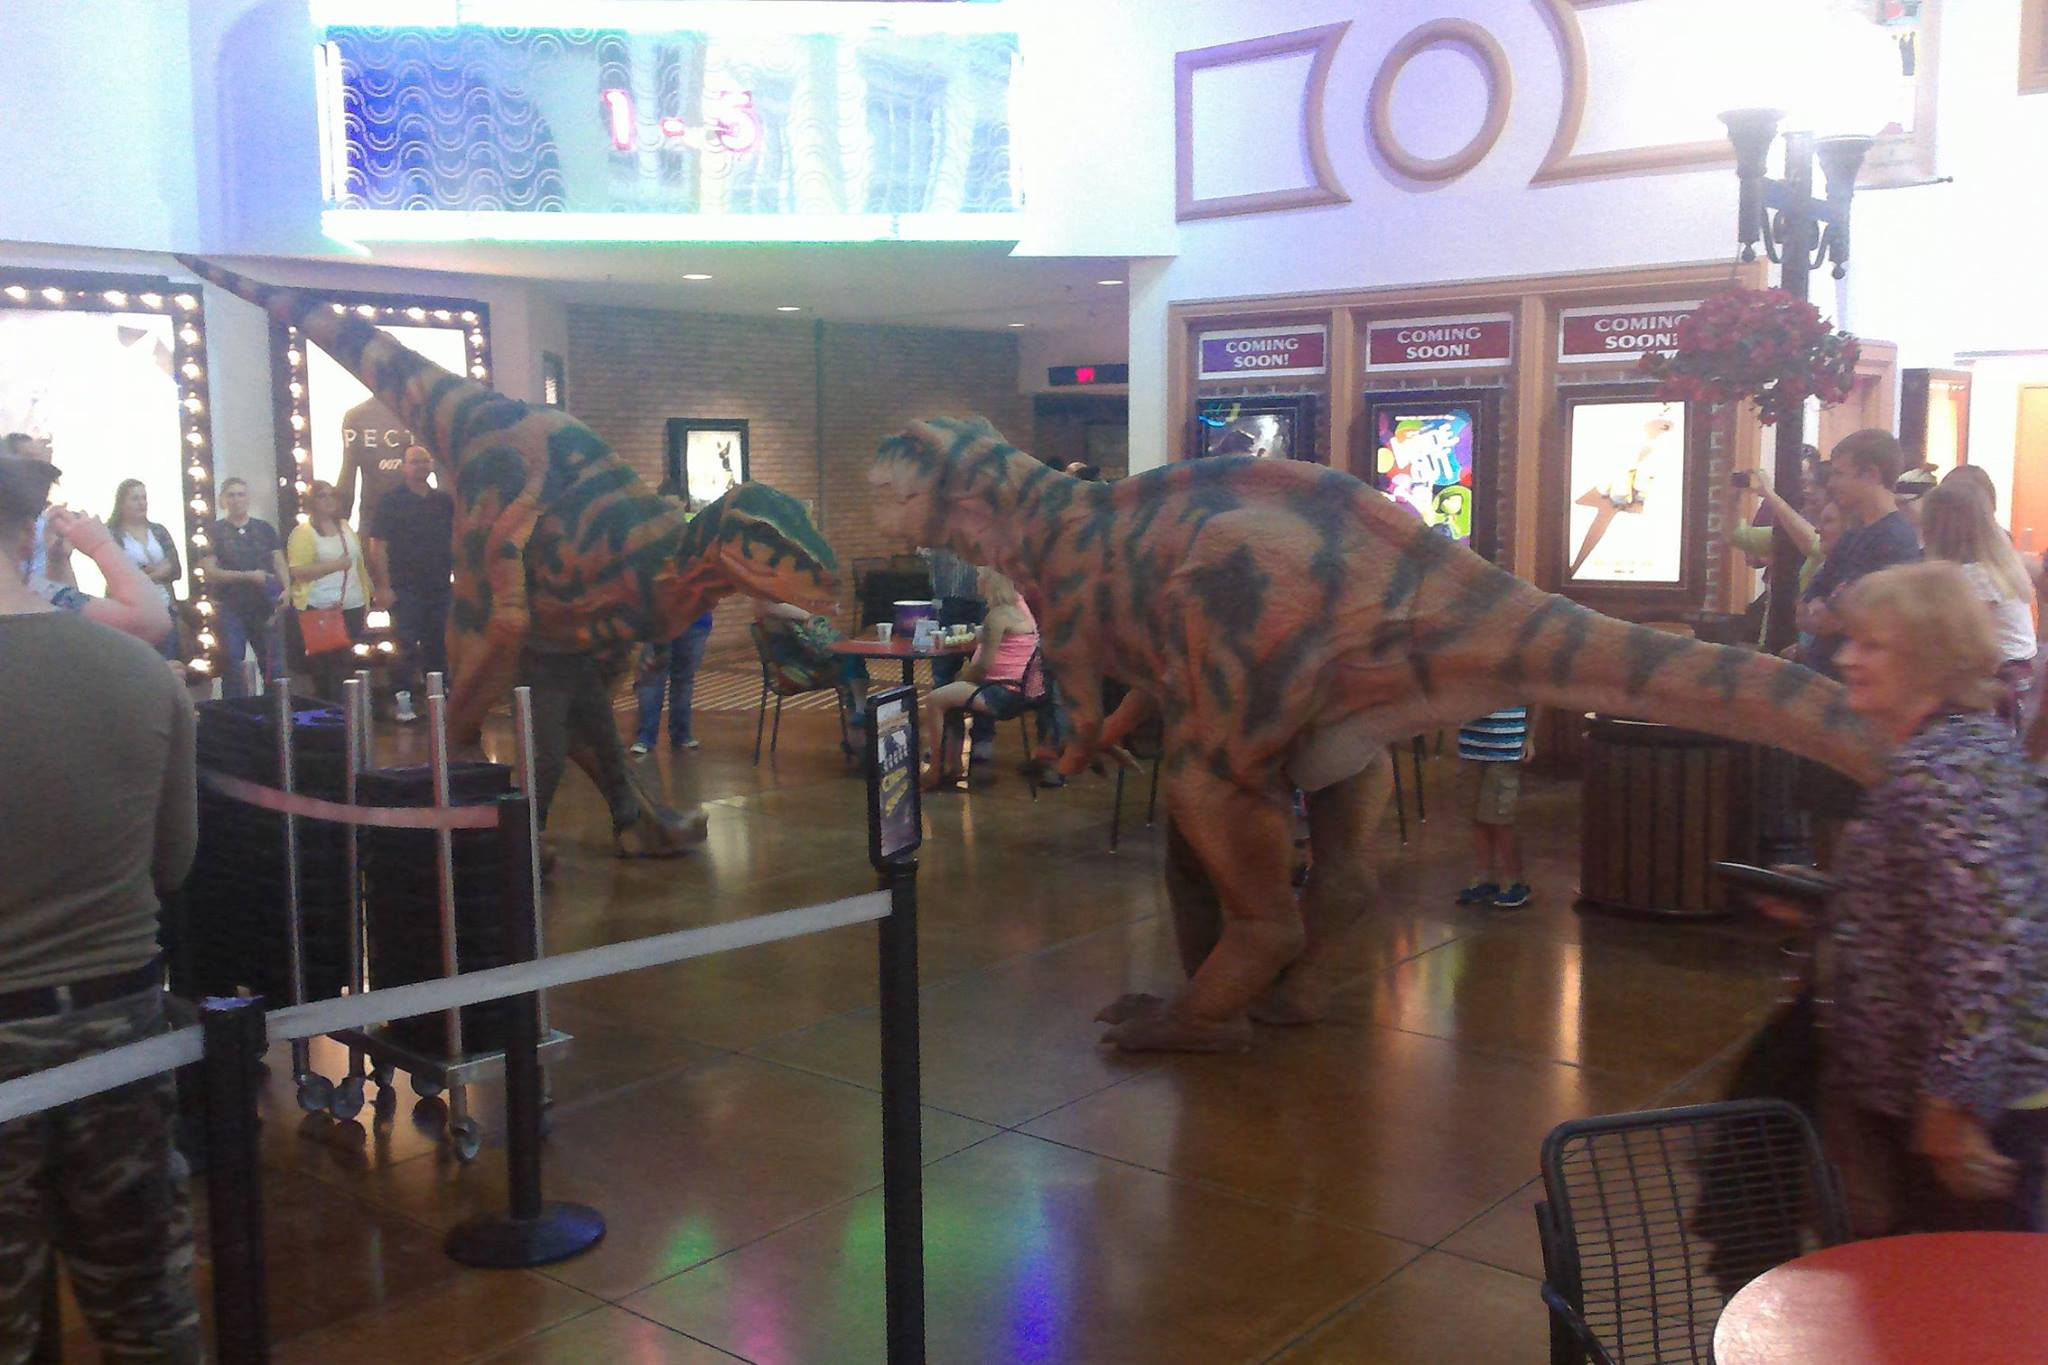 Dinosaurs movie theater